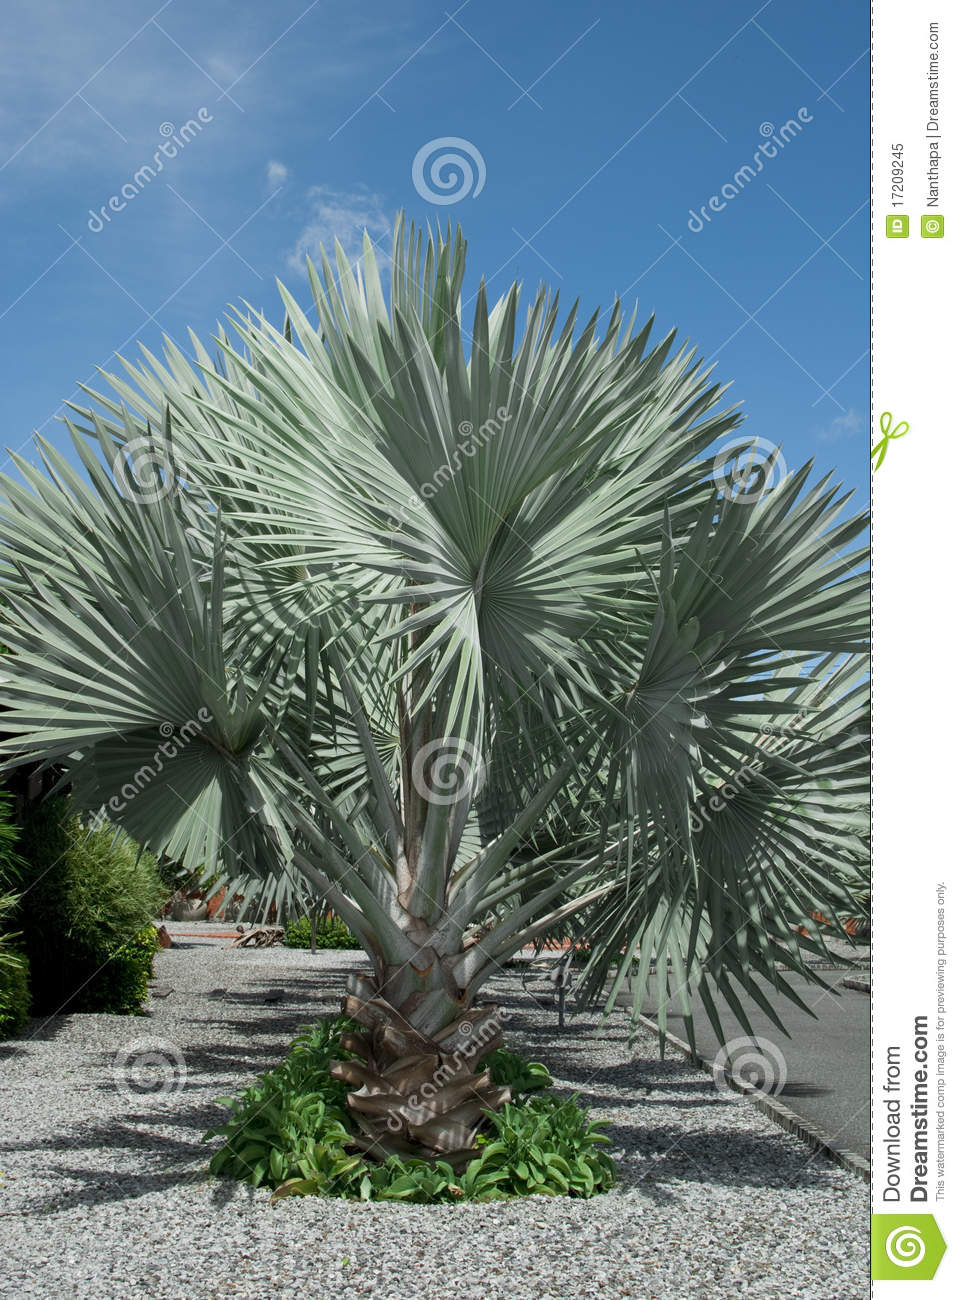 Silver Palm Tree Royalty Free Stock Photo - Image: 17209245: www.dreamstime.com/royalty-free-stock-photo-silver-palm-tree...